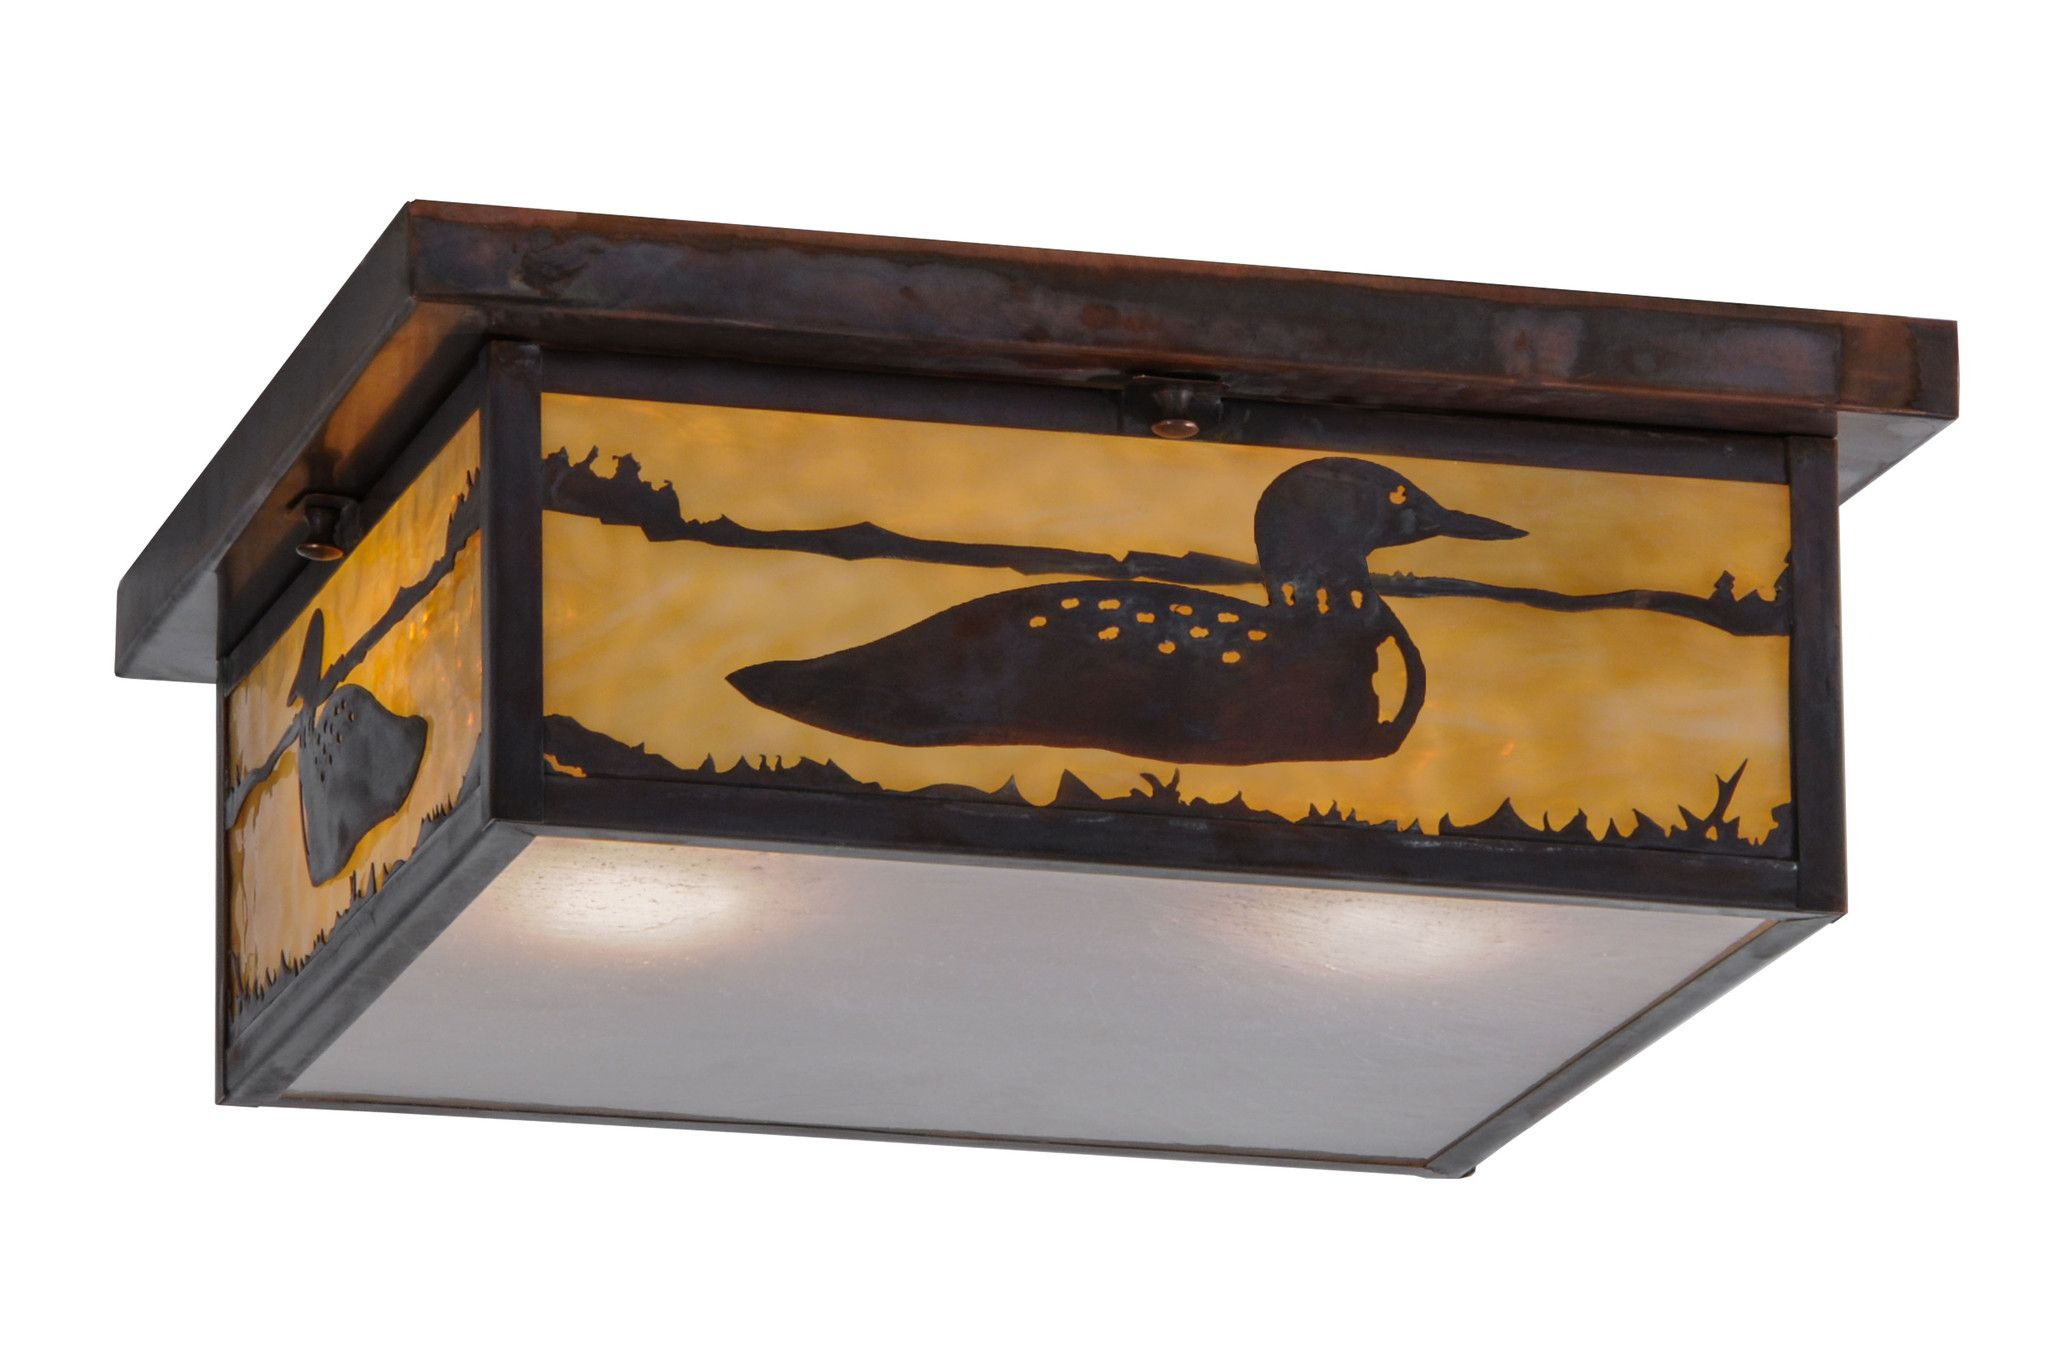 14 Inch Sq Hyde Park Loon Flushmount - 14 Inch Sq Hyde Park Loon flush mountThis Craftsman Signature ceiling fixture featuresstunning images of aquatic birds splashing in a lakecaptured in this wildlife inspired Beige Art Glass onside panels with a Frost Seeded Glass diffuser onbottom of fixture. Solid Brass fixture is complemented with a frame and hardware hand finished in Vintage copper. Handmade by Meyda Craftsmen in the Yorkville,NY manufacturing facility. Custom colors, styles and sizes…